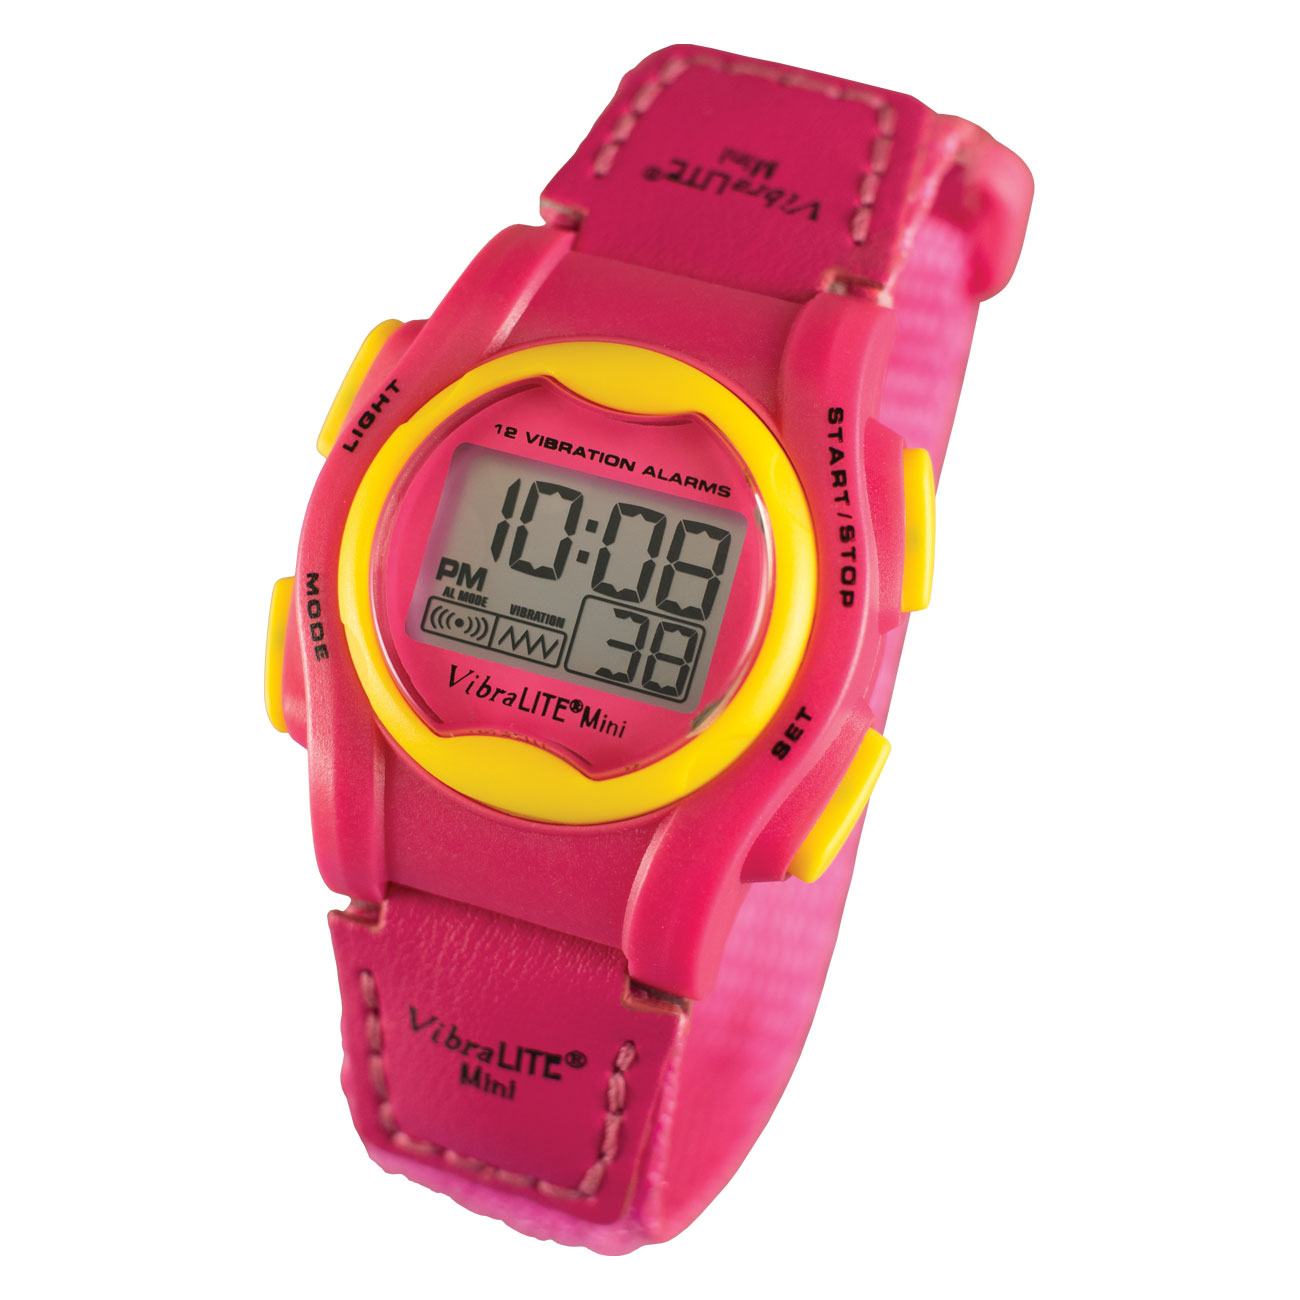 VibraLITE Mini Vibration Watch - Hot Pink with Yellow Bezel-Buttons - click to view larger image